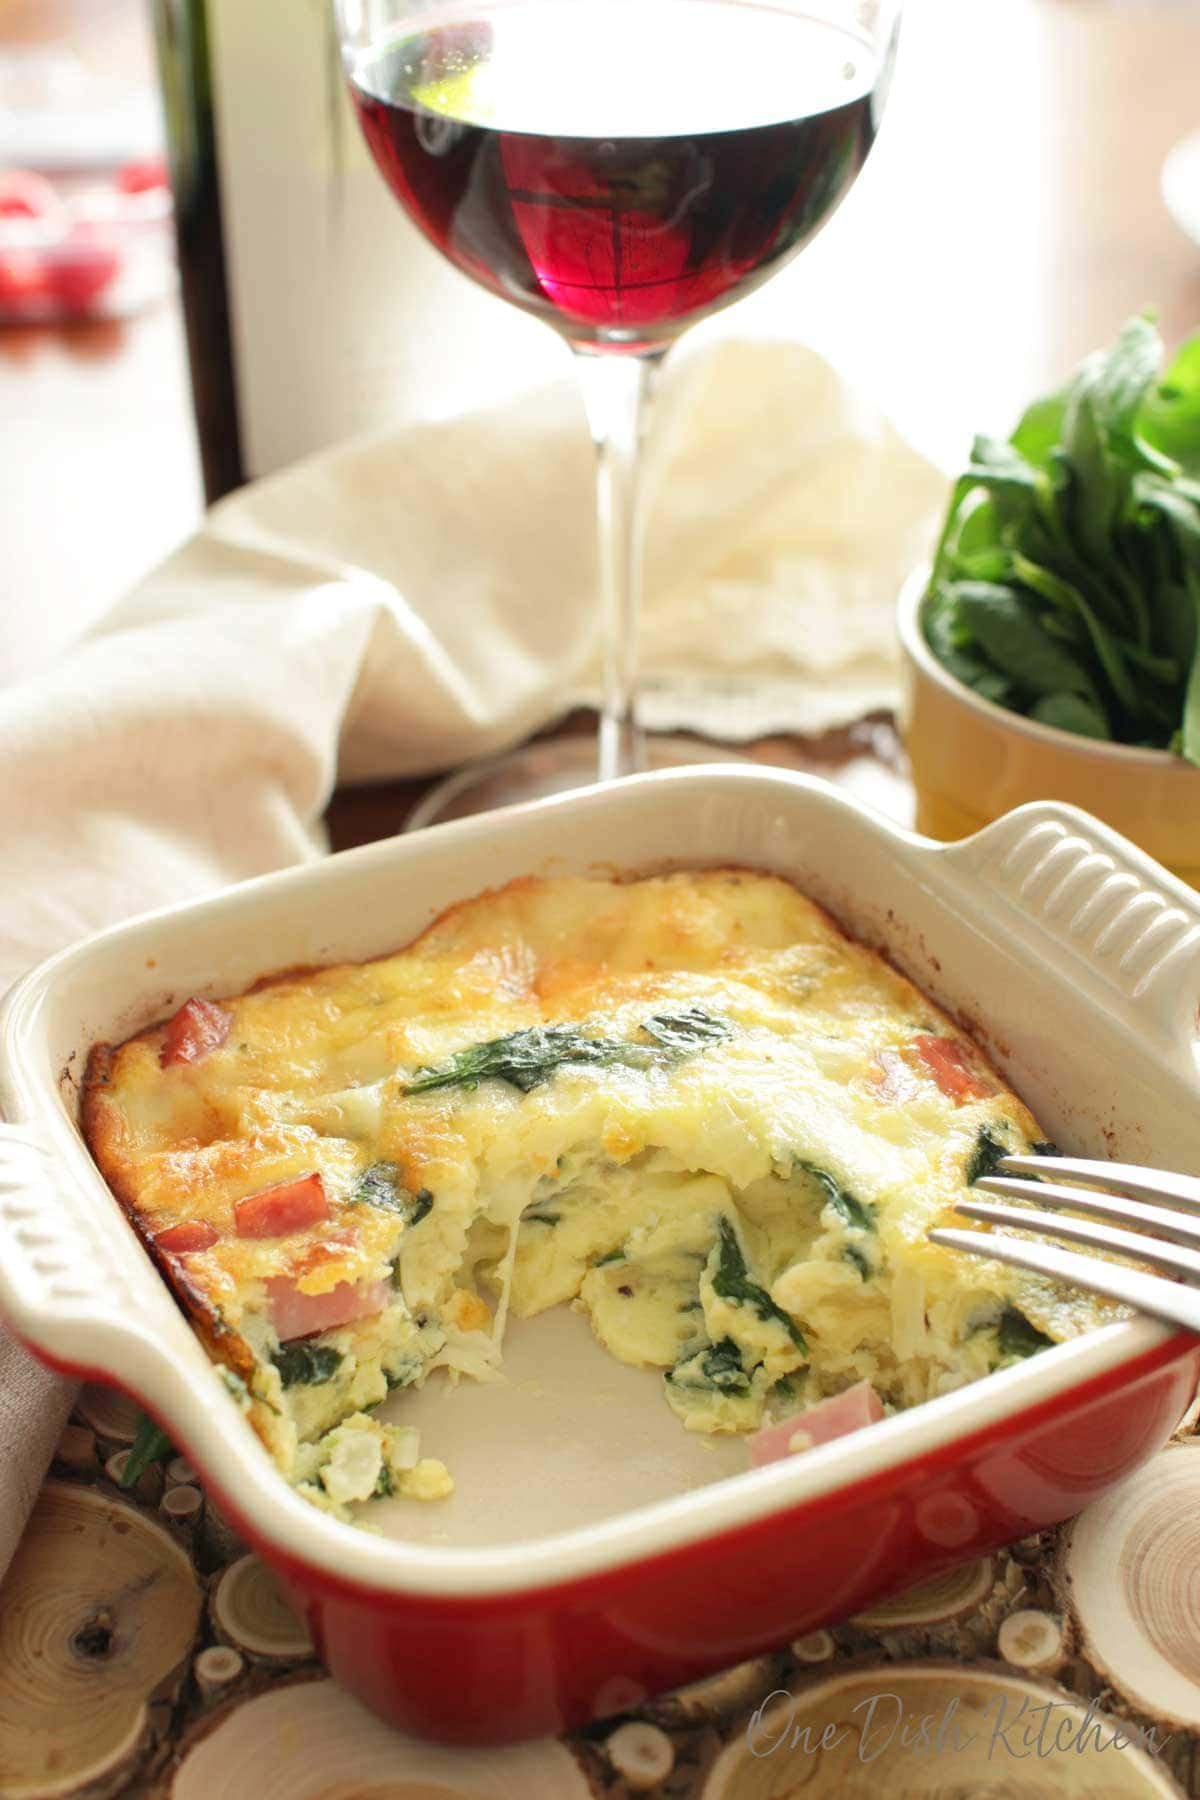 a partially eaten crustless spinach quiche next to a glass of wine | one dish kitchen